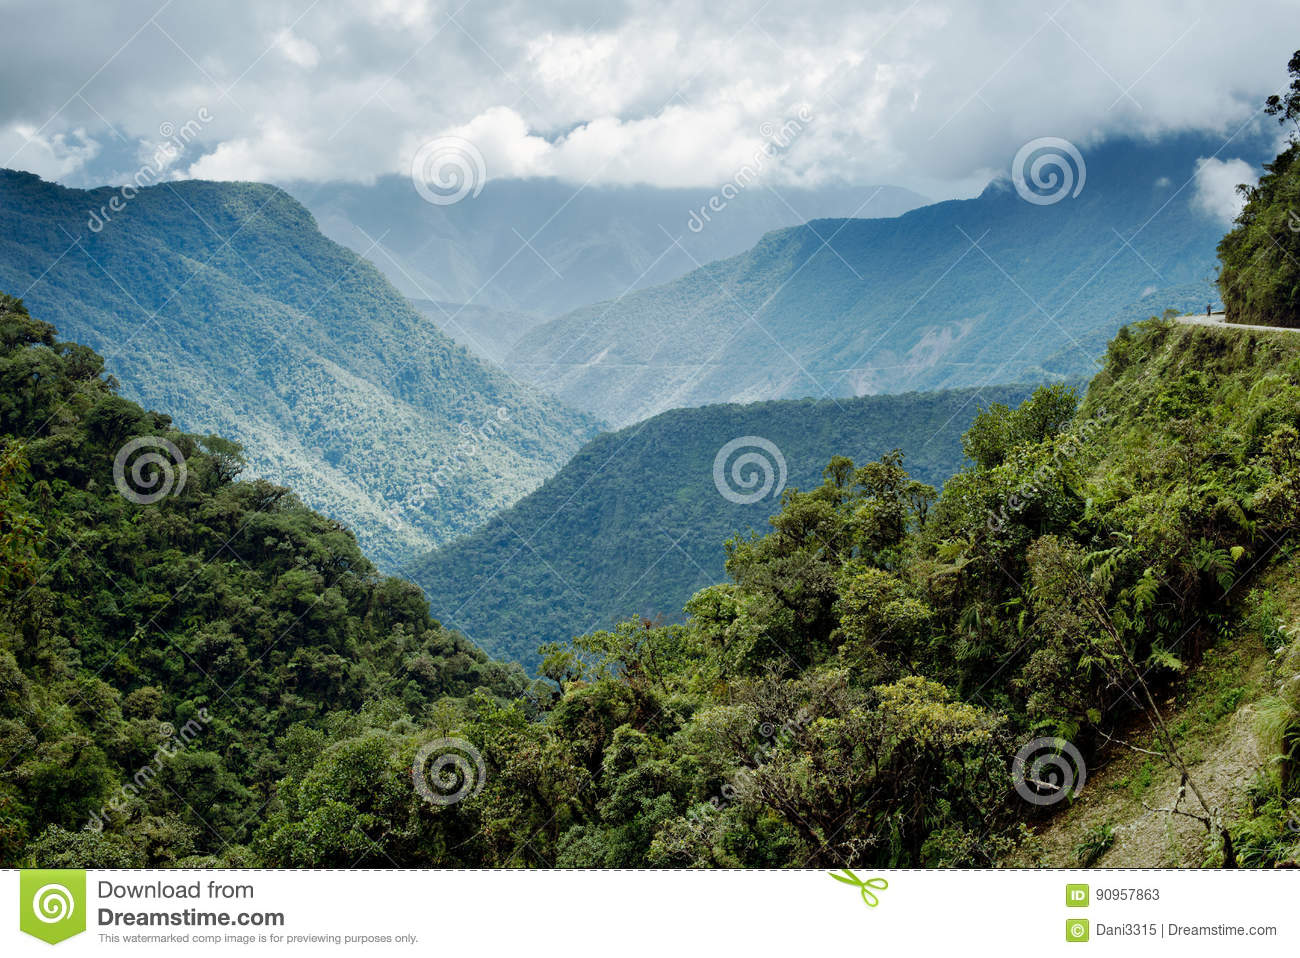 Panoramic view of the mountainous landscape of North Yongas